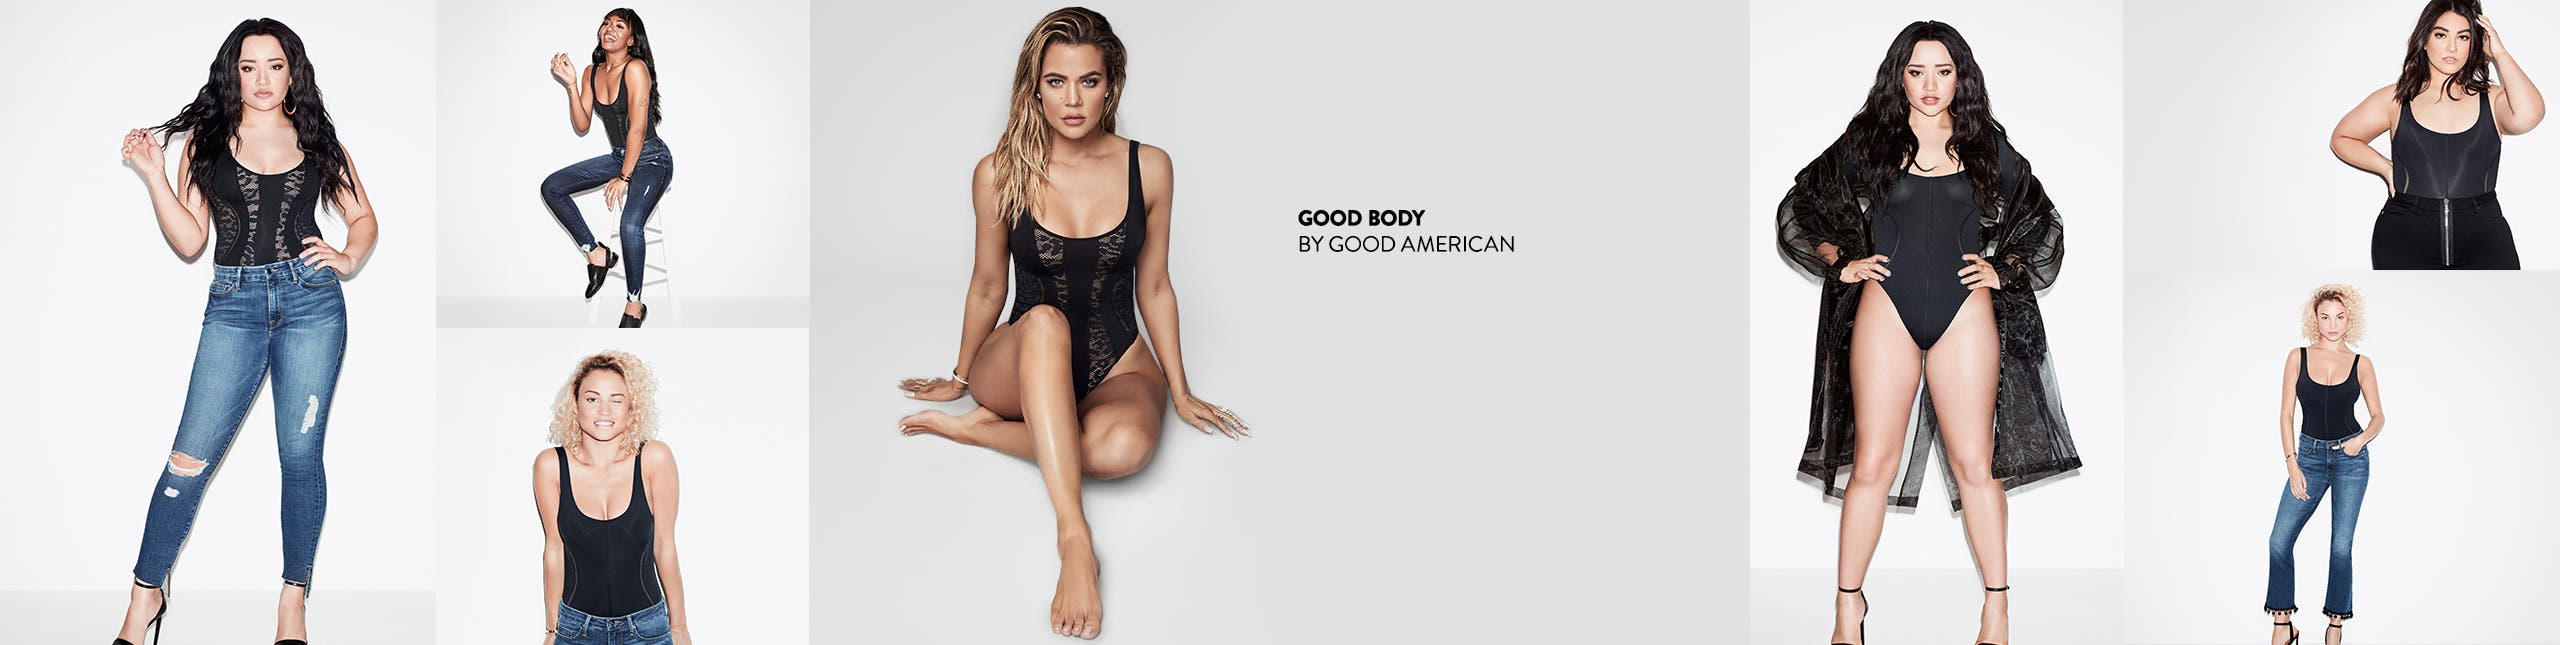 Introducing Good Body from Good American.